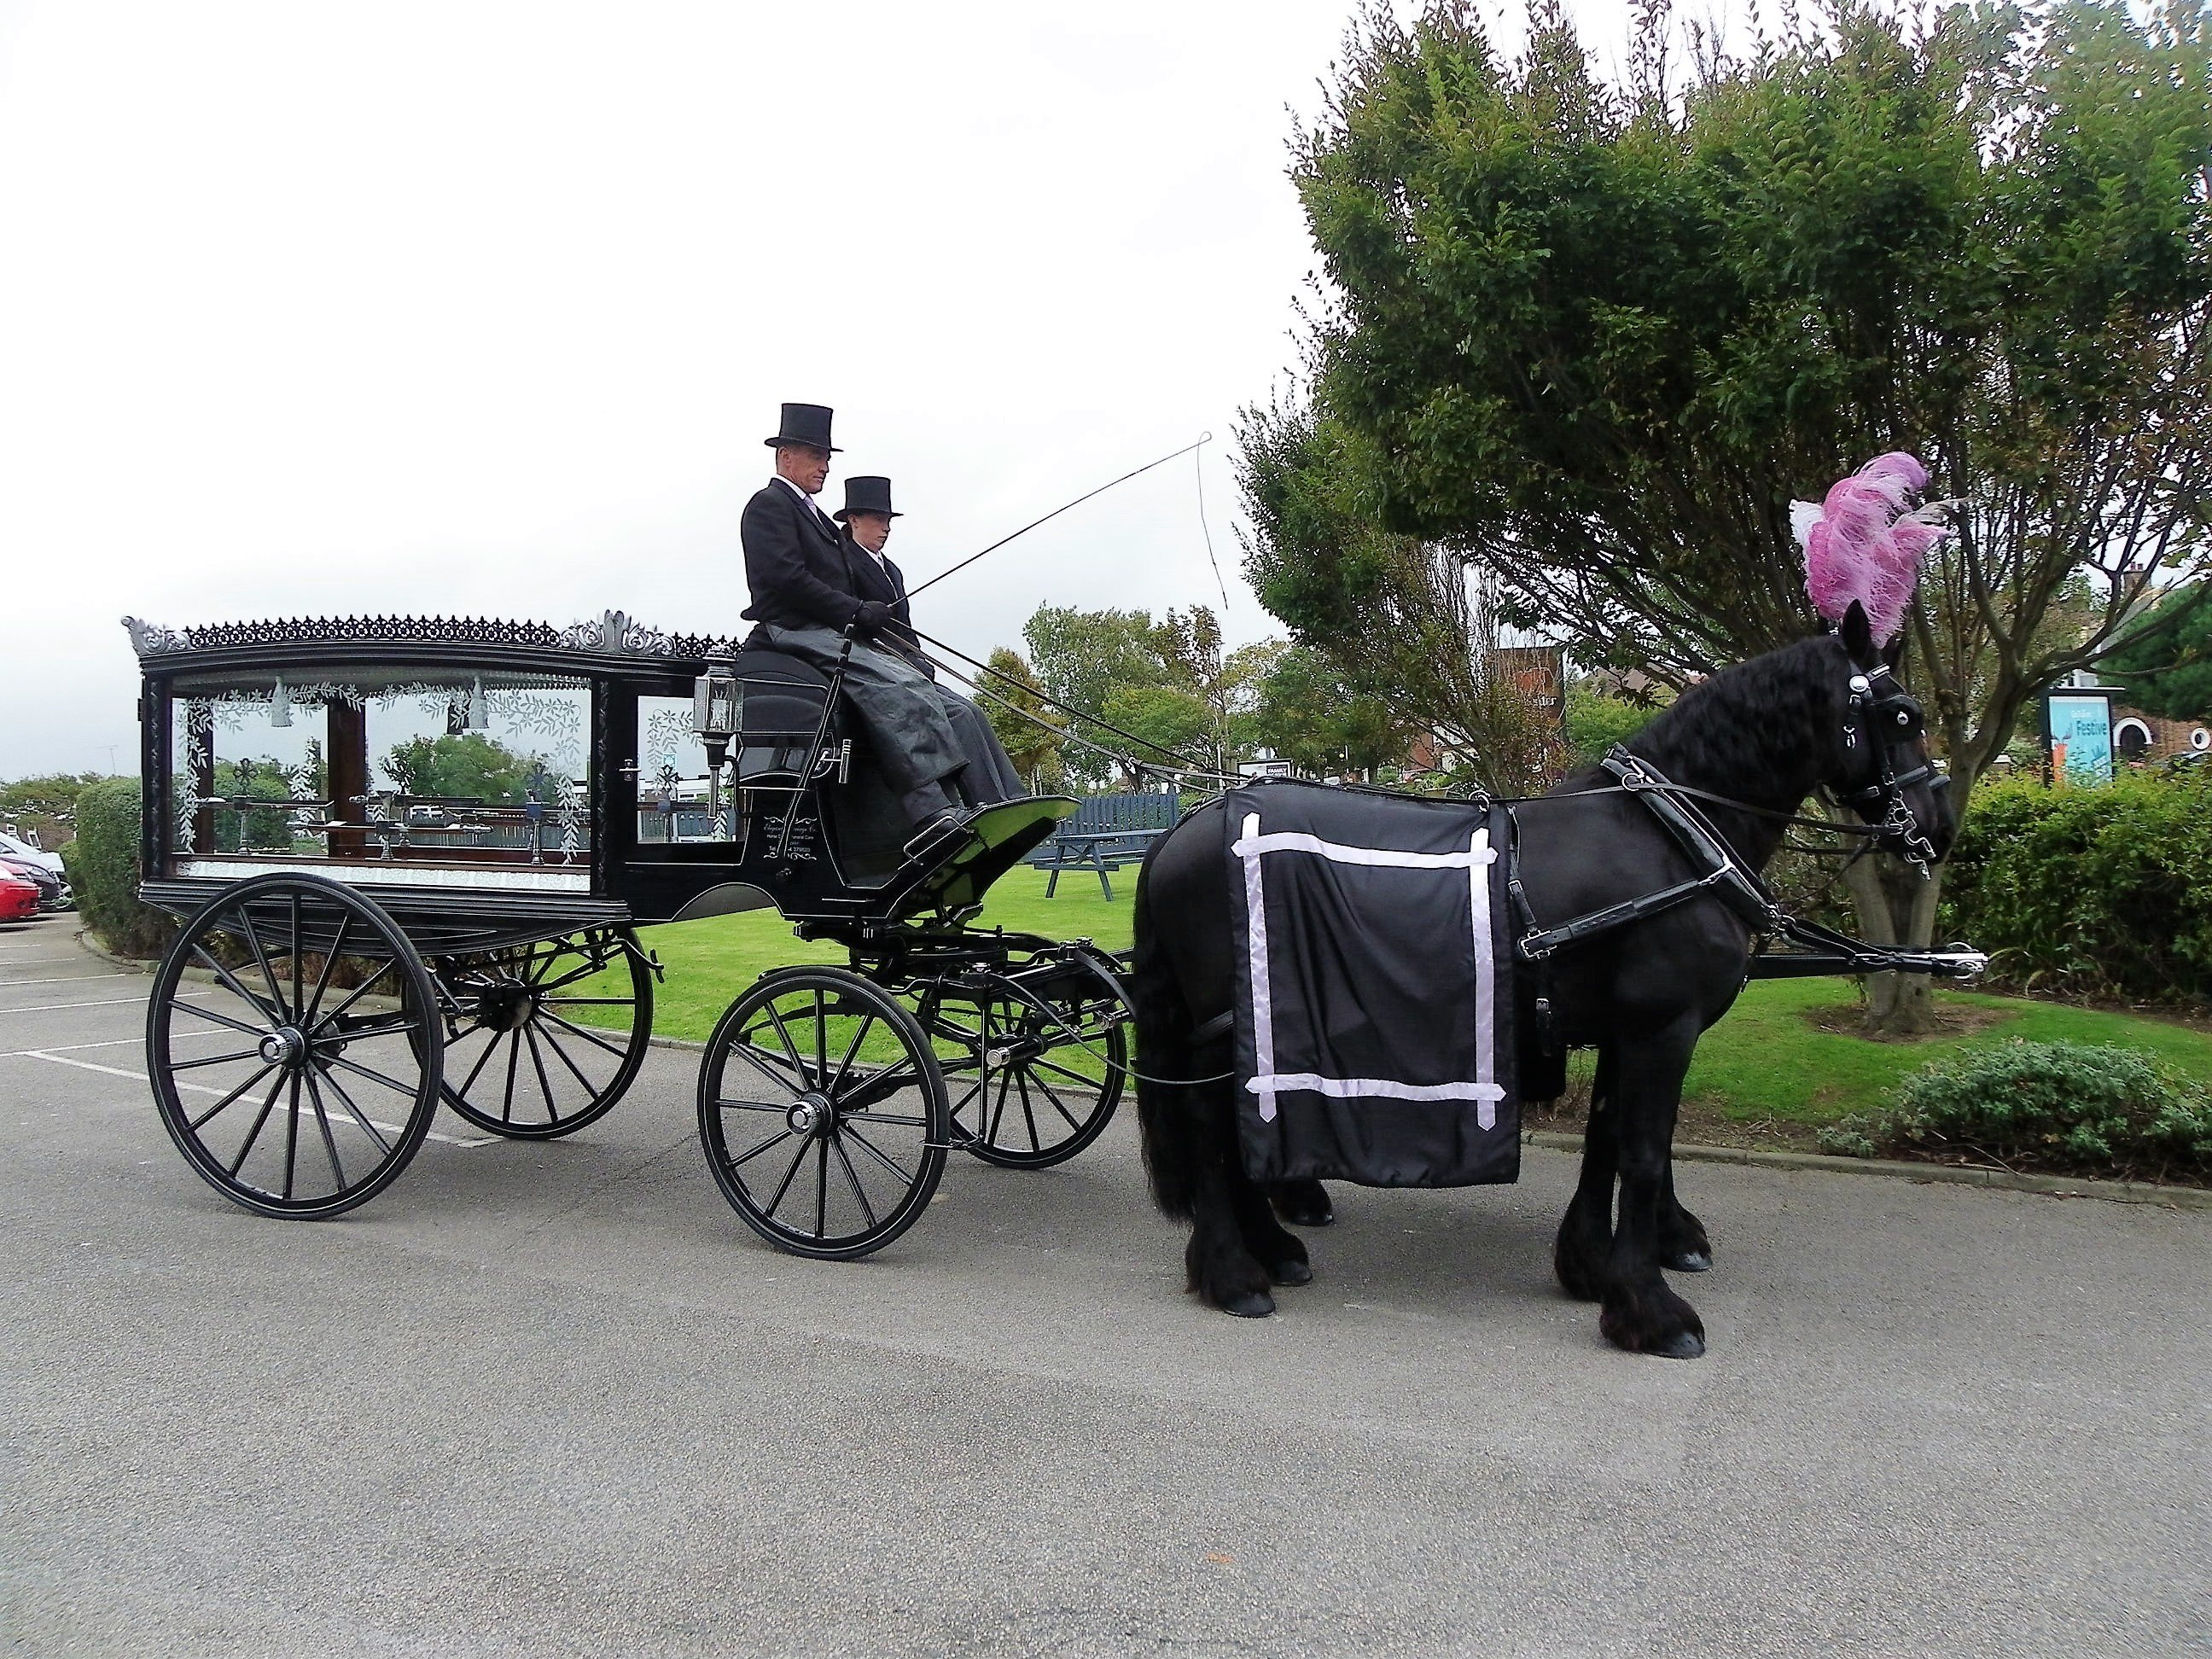 black horse drawn funeral hearse with black horses and lilac plumes and drapes